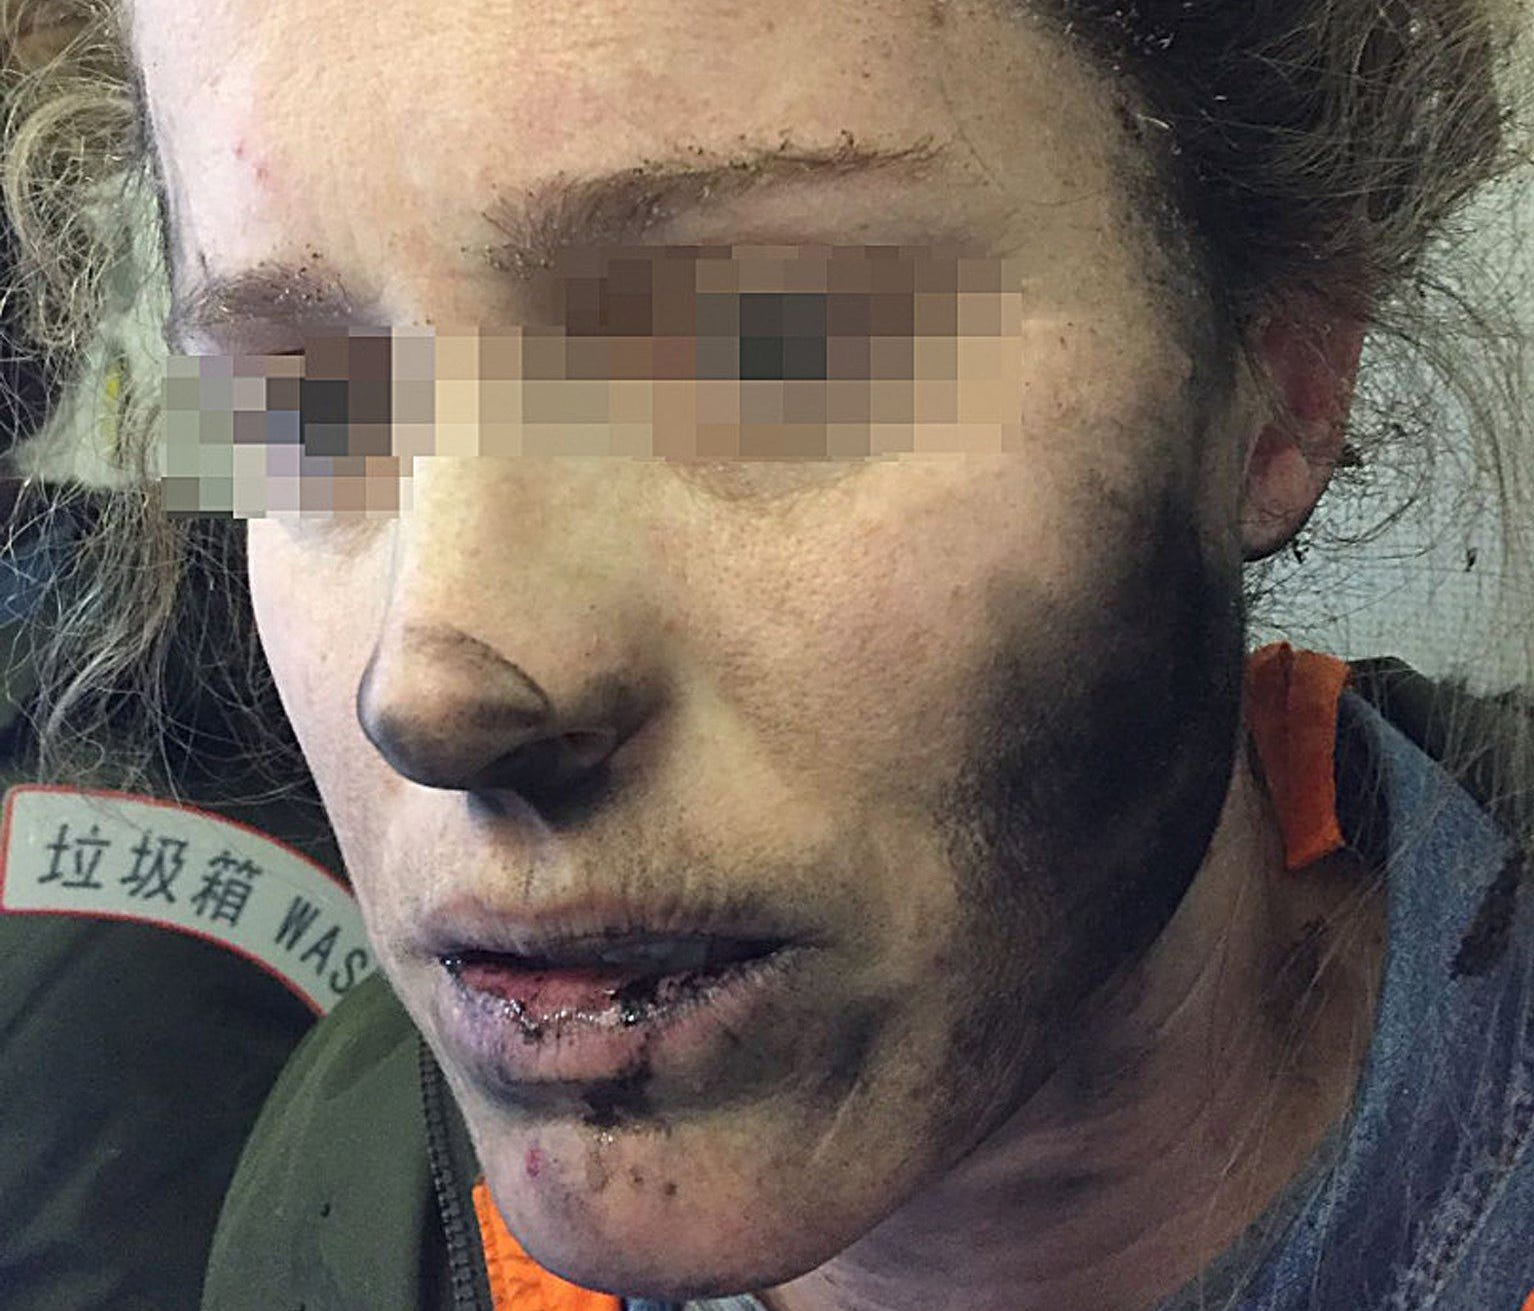 An undated handout photo made available by the Australian Transport Safety Bureau (ATSB) on March 15, 2017, shows a woman with facial injuries after the headphones she was wearing exploded.